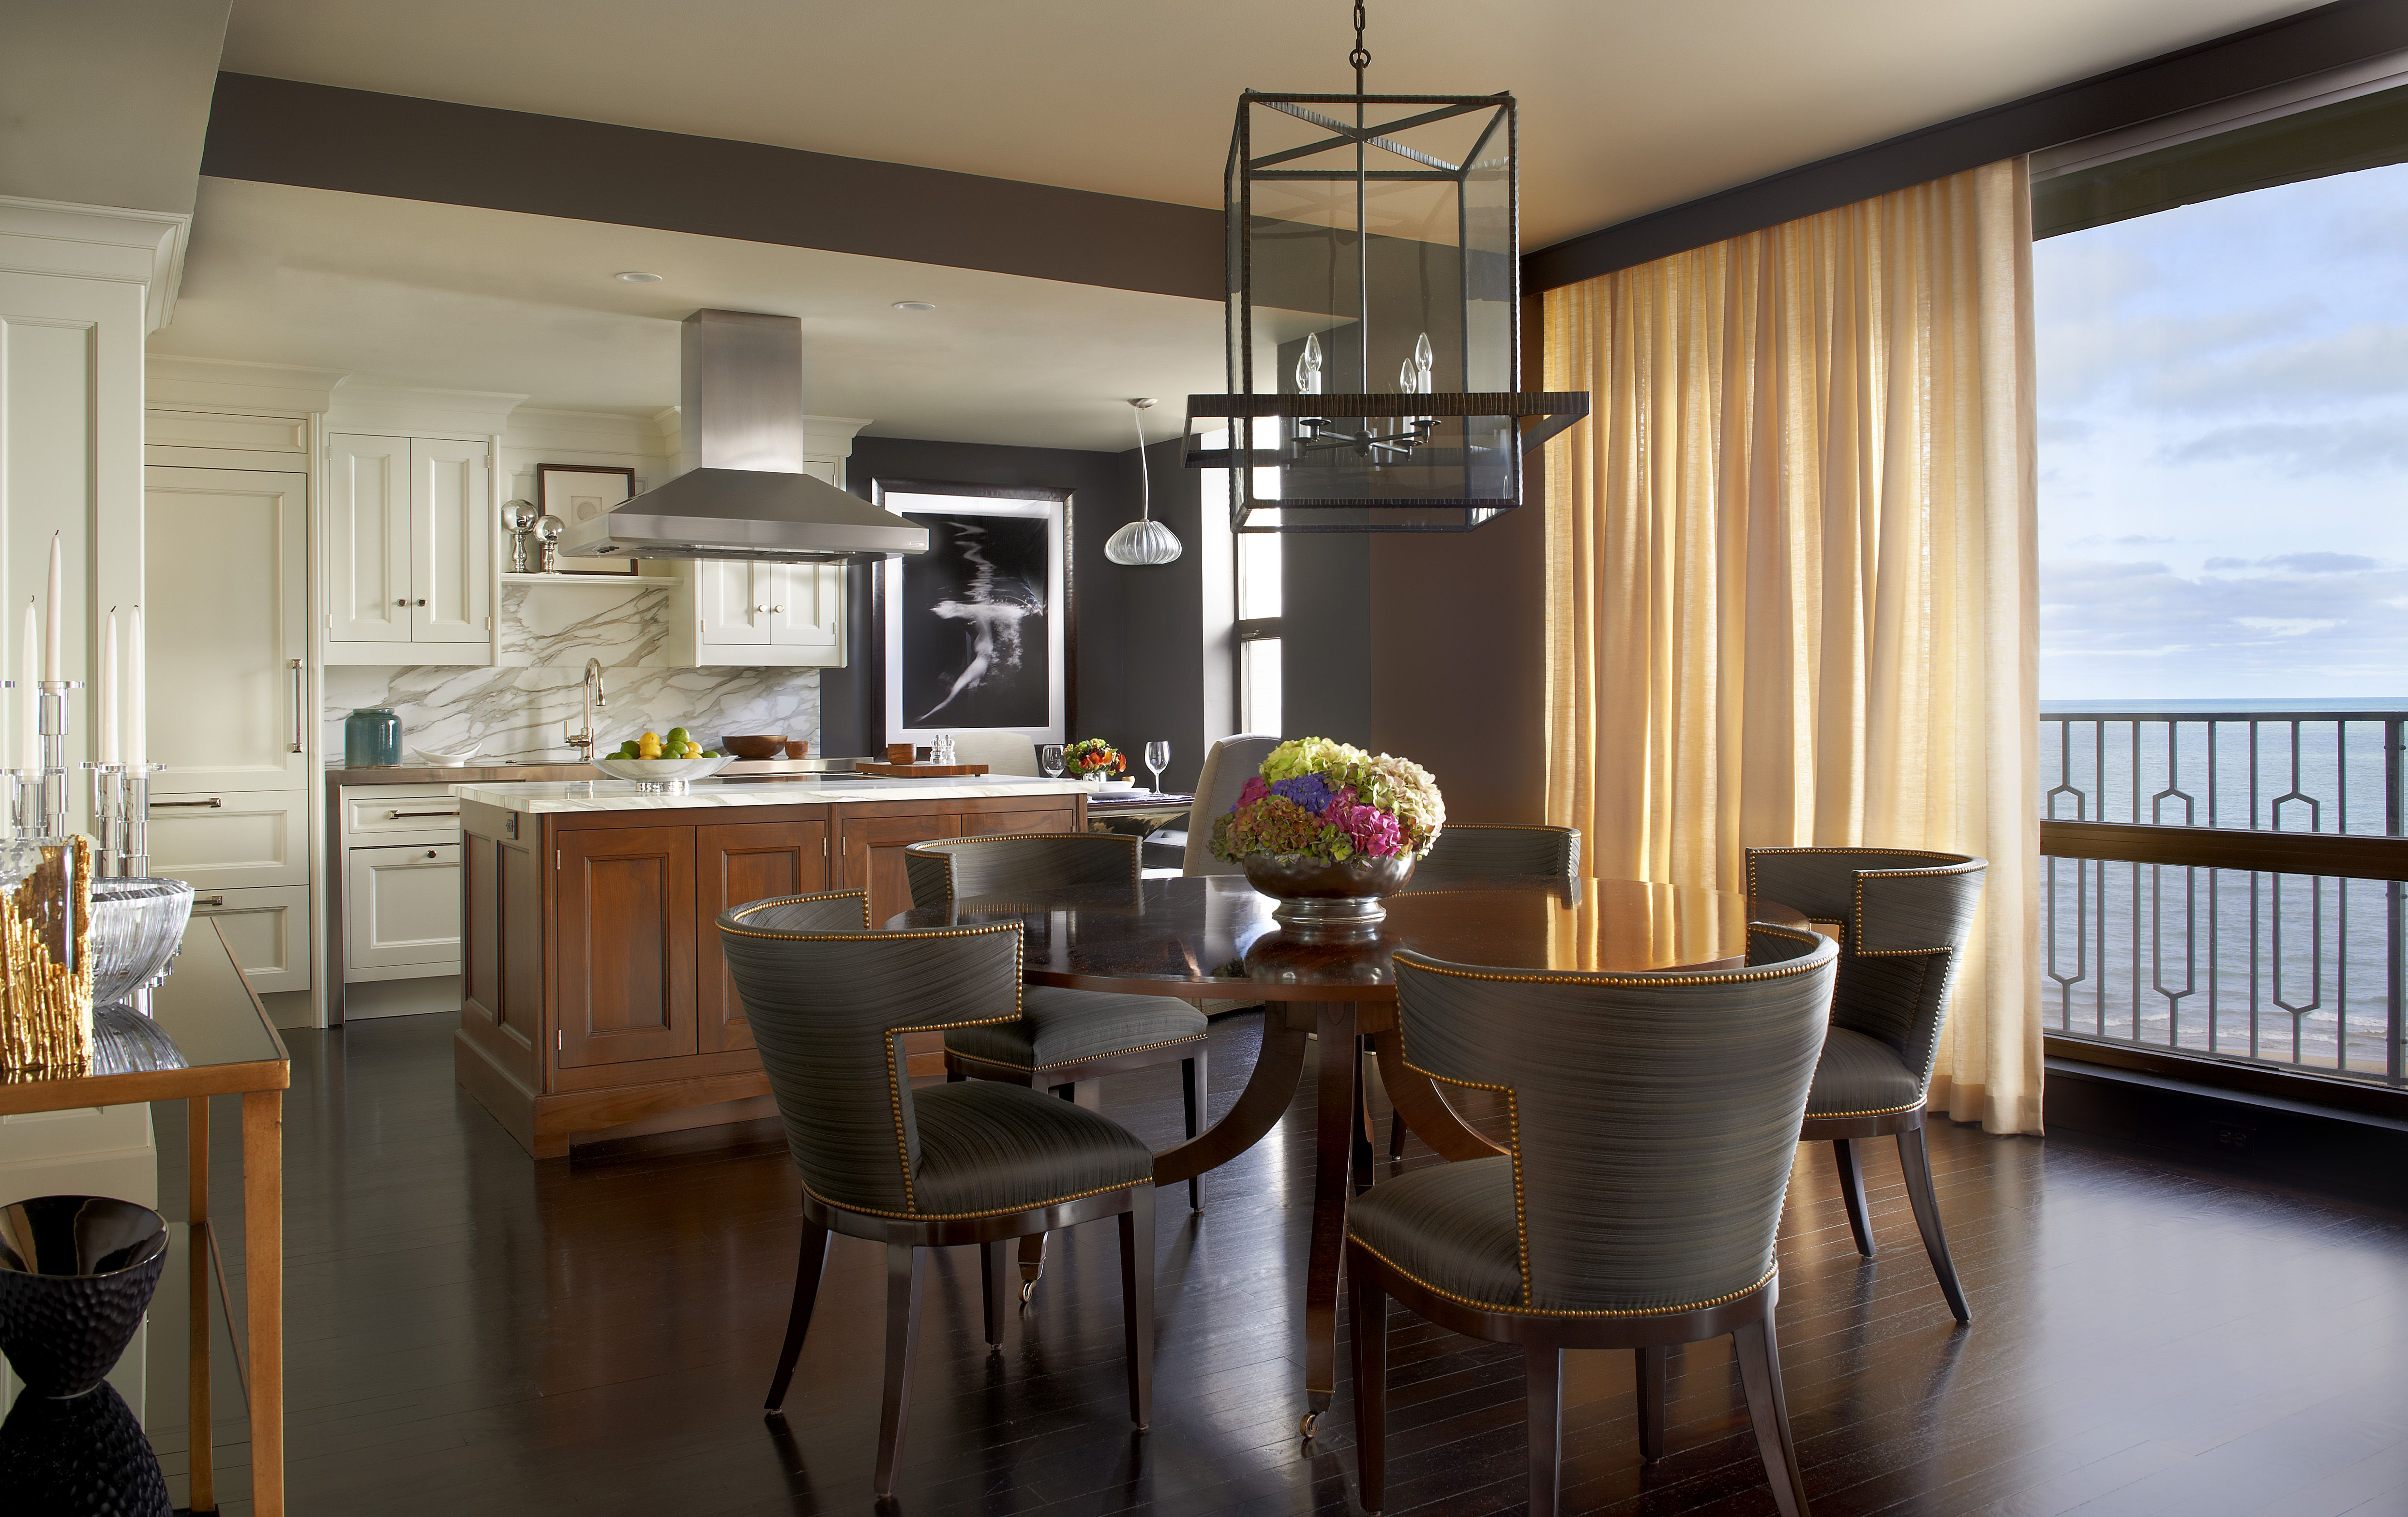 L shaped kitchen dining room dining room design ideas l shaped kitchen dining room mesmerizing the style and comfort of the kitchen and dining room dzzzfo